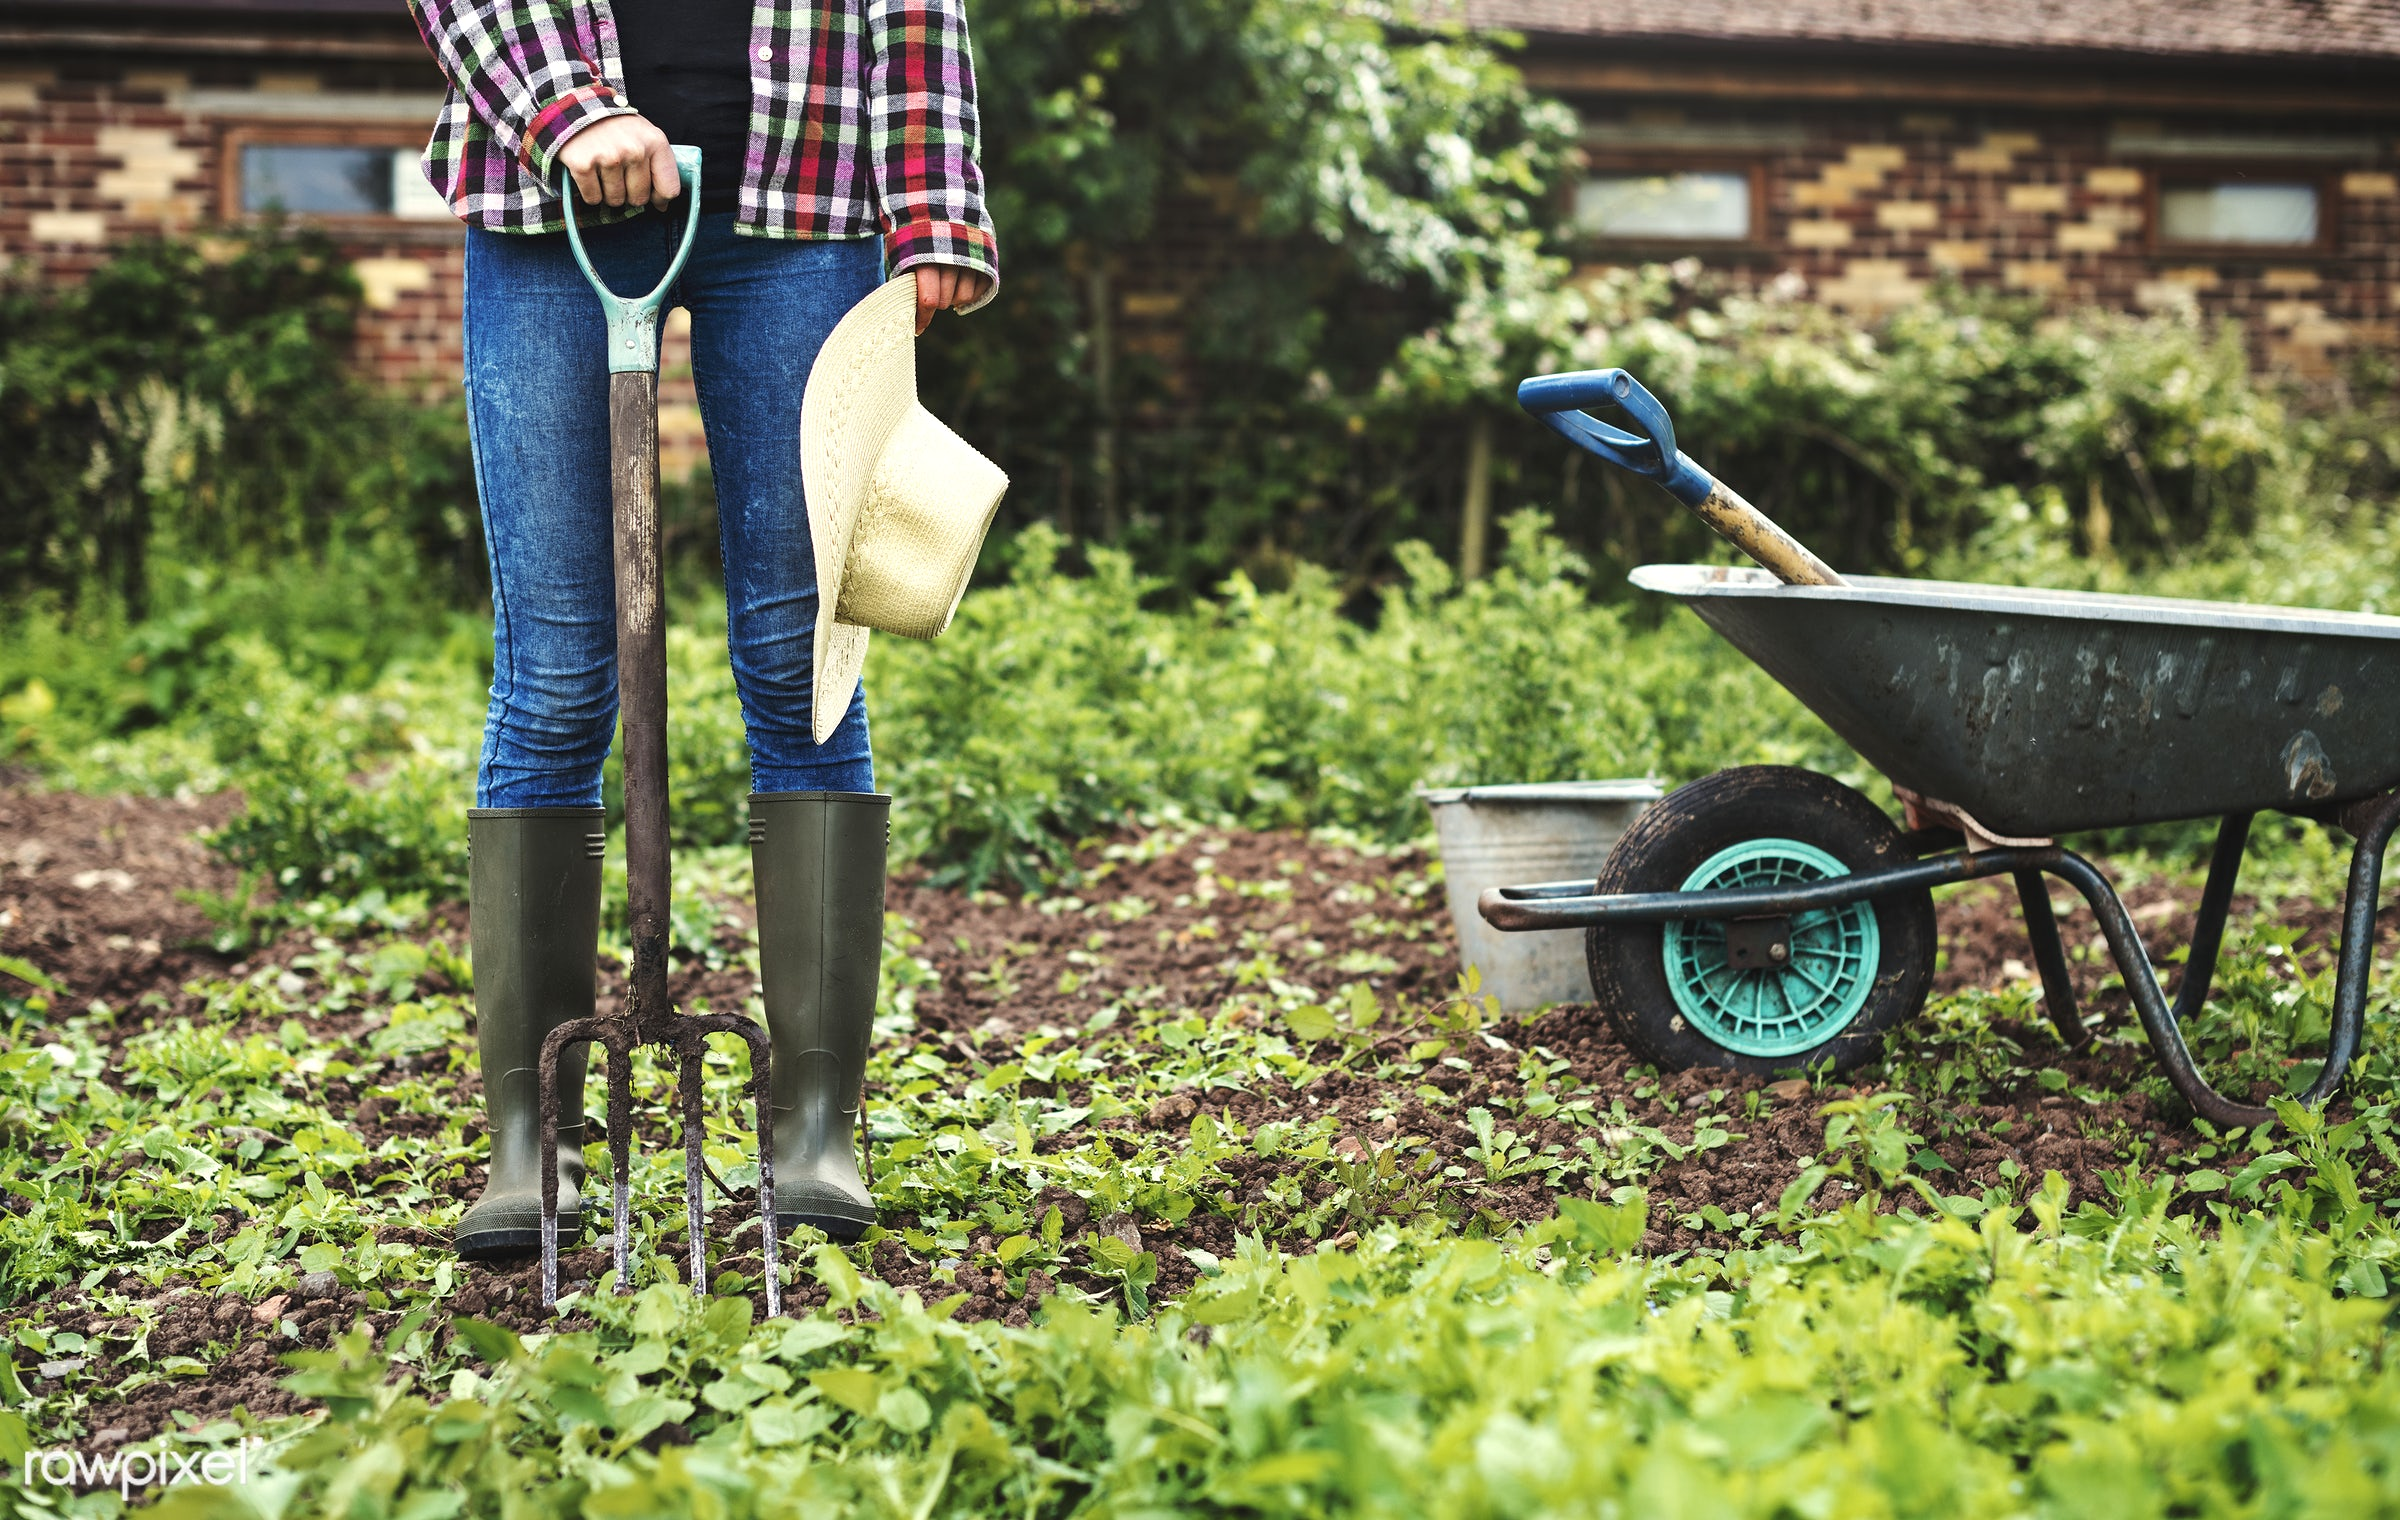 Vegetable farm - gardening, vegetable, boots, botanical, botany, country, countryside, cultivate, cultivating, farm, fresh,...